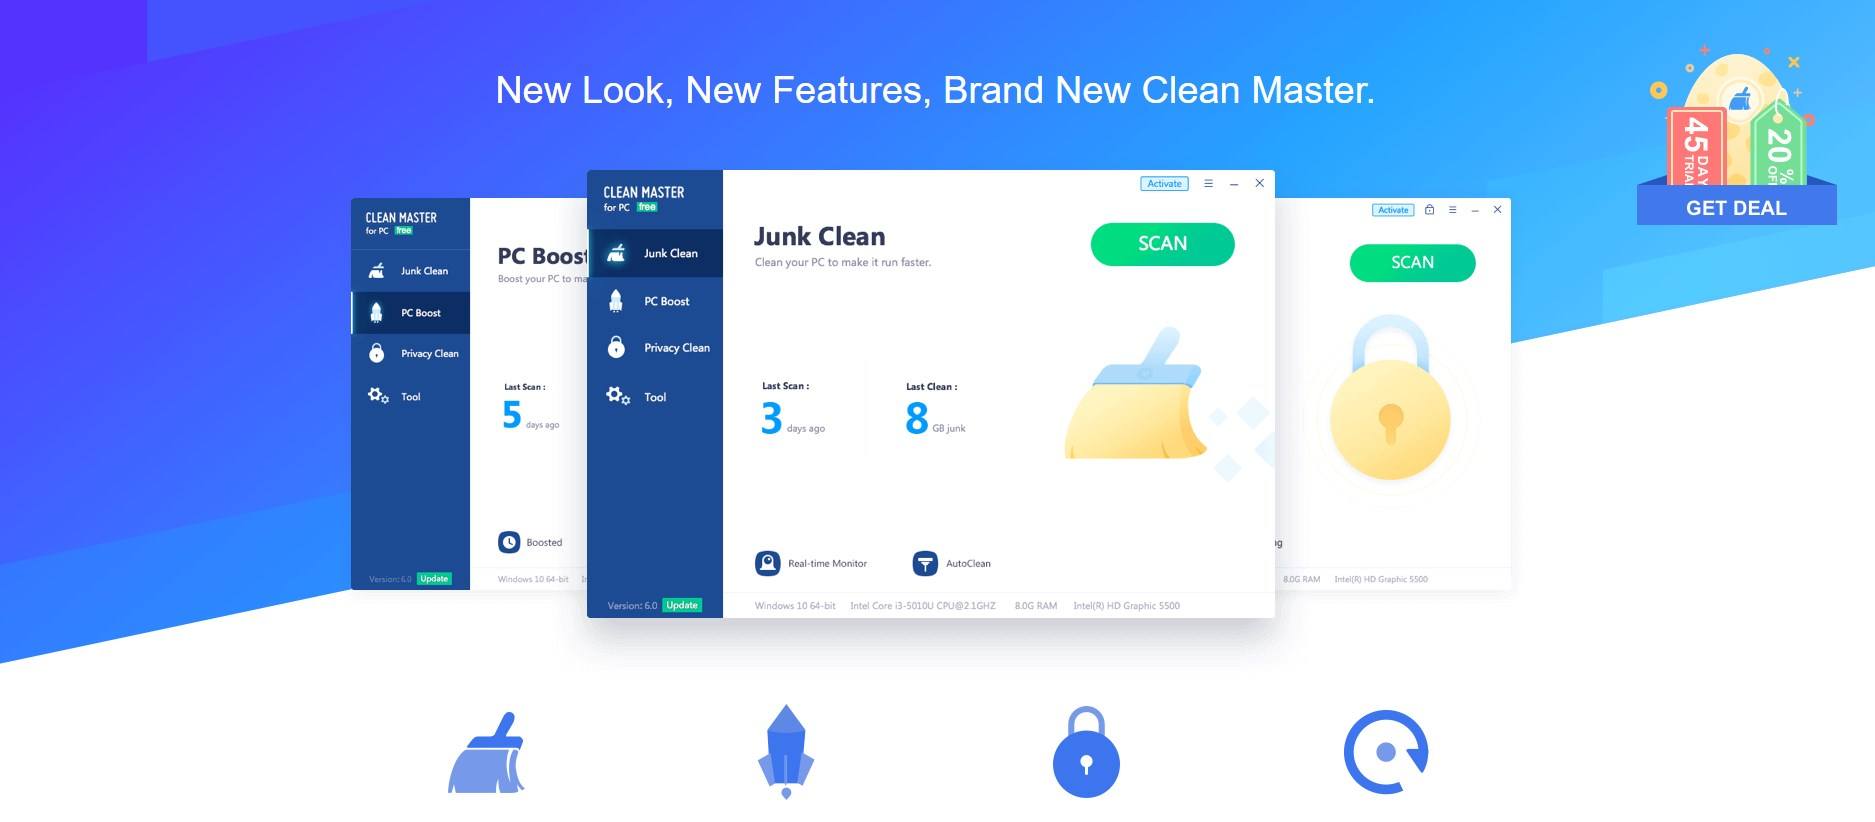 Clean Master For PC : Quick Review